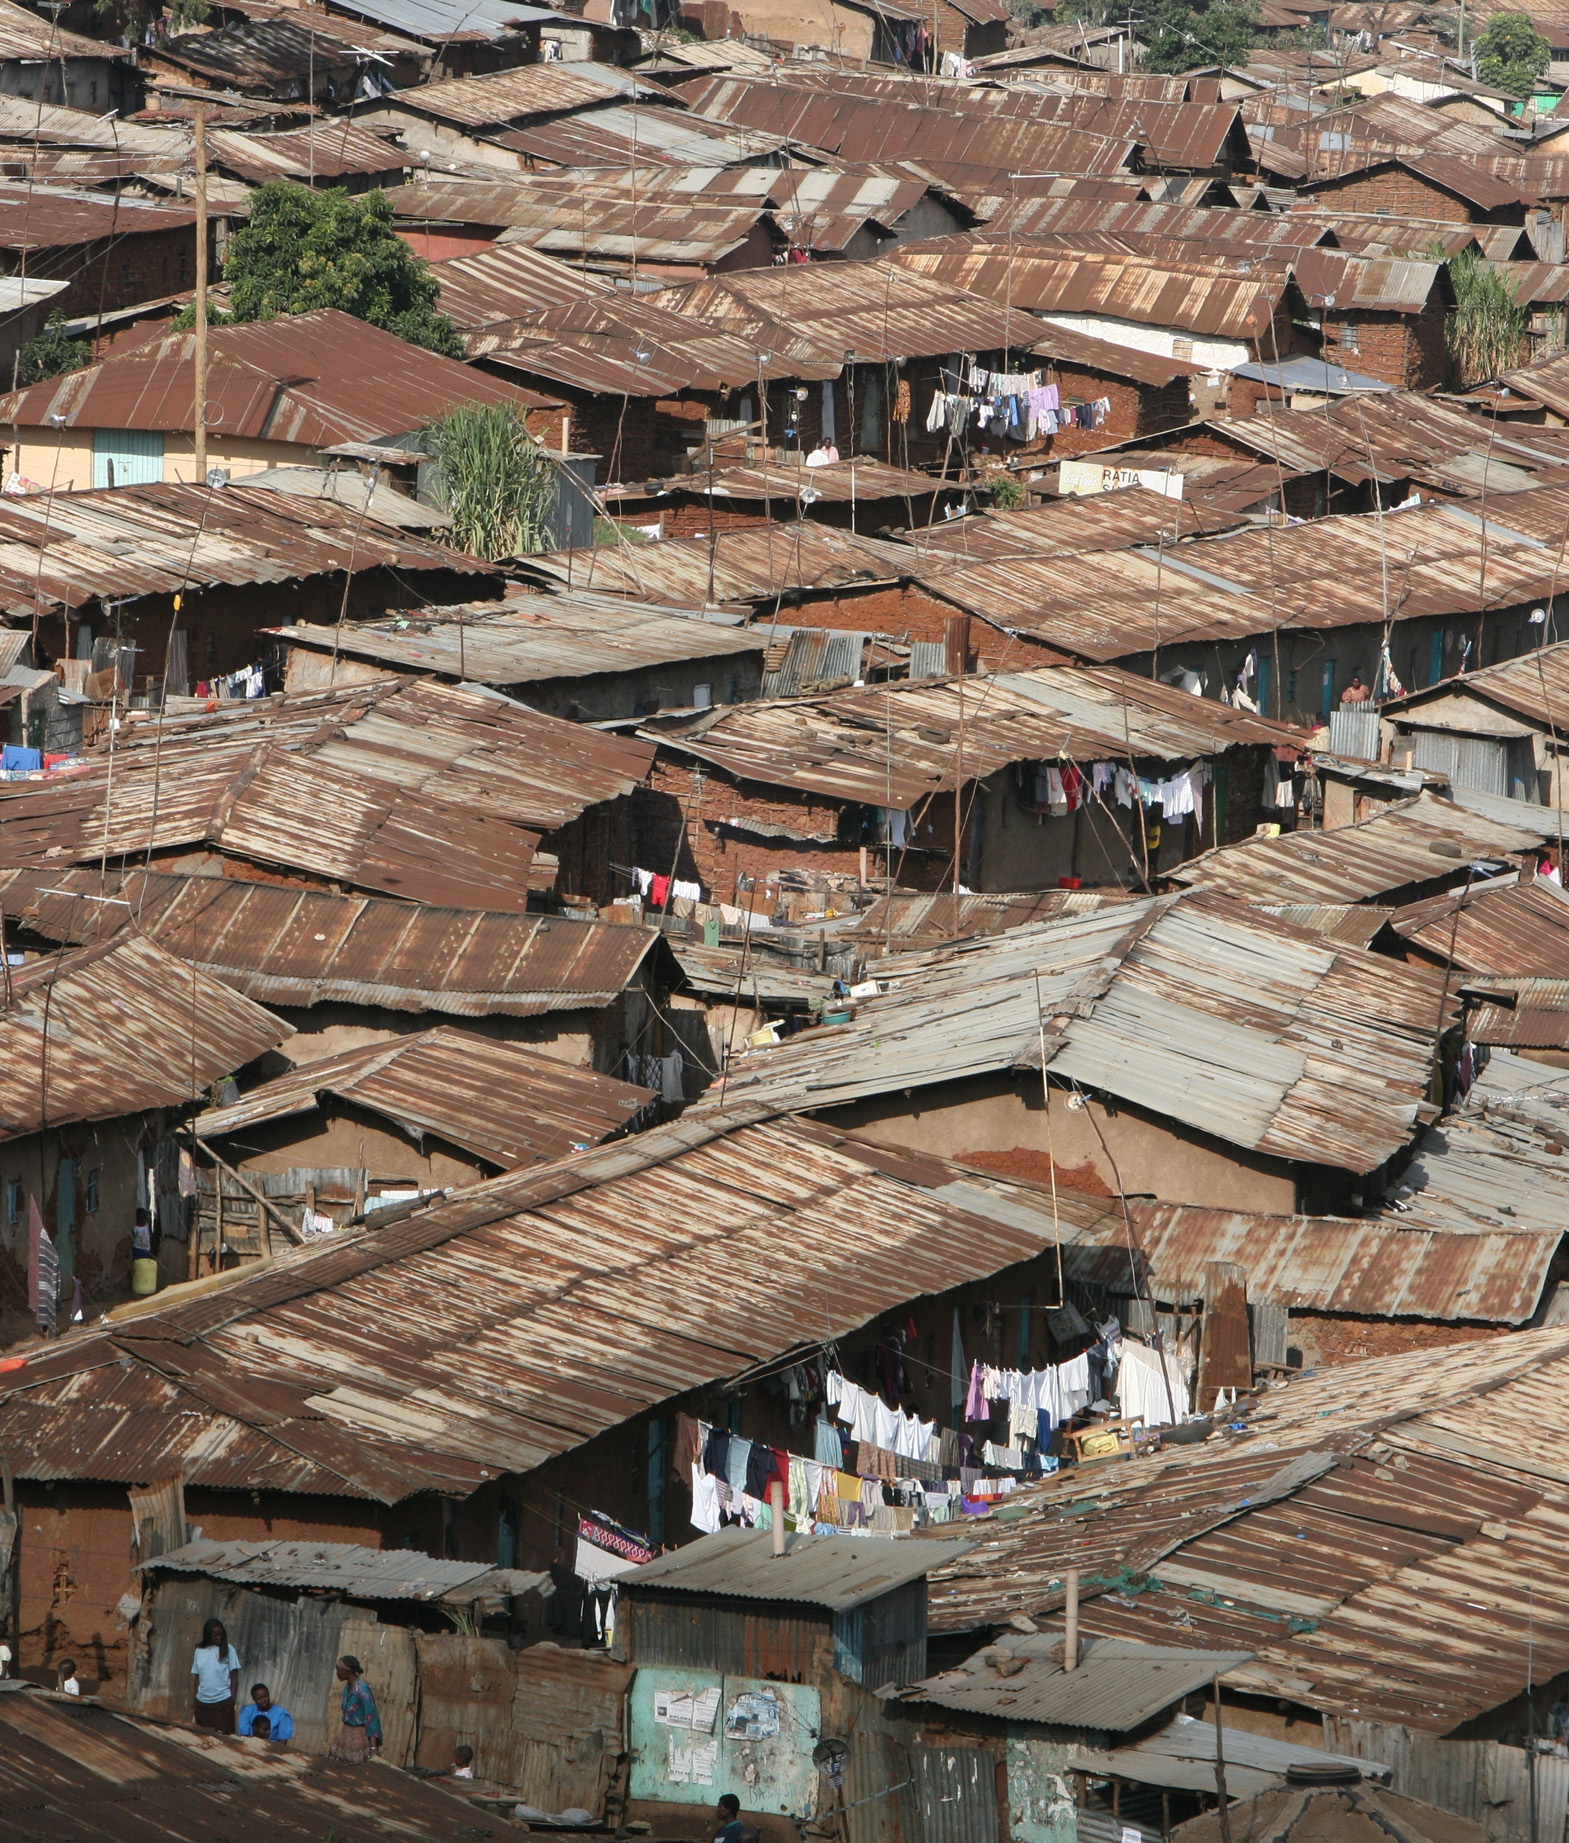 Roof tops in the Kibera slum, Nairobi. For Generic use